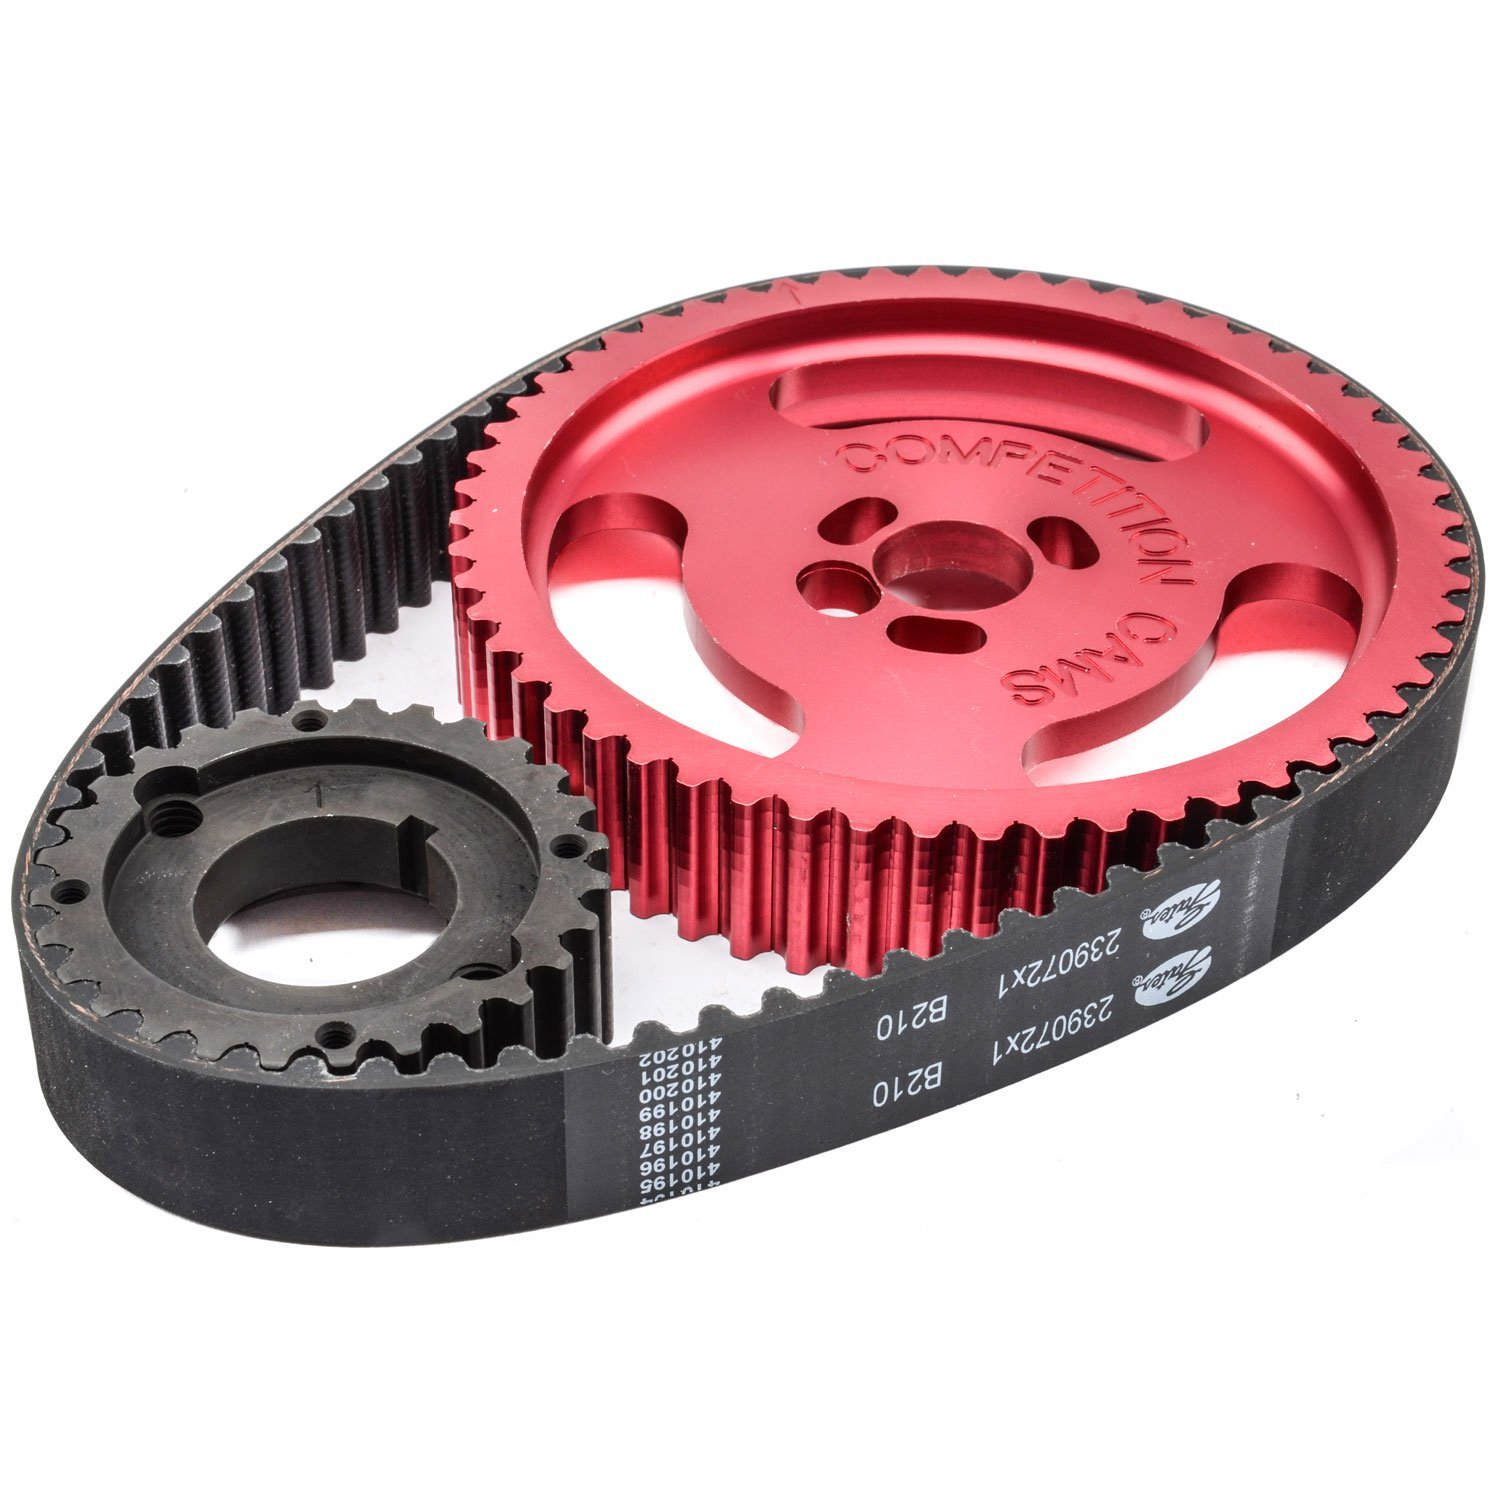 COMP Cams 5100 Wet Belt Drive System for Small Block Chevy